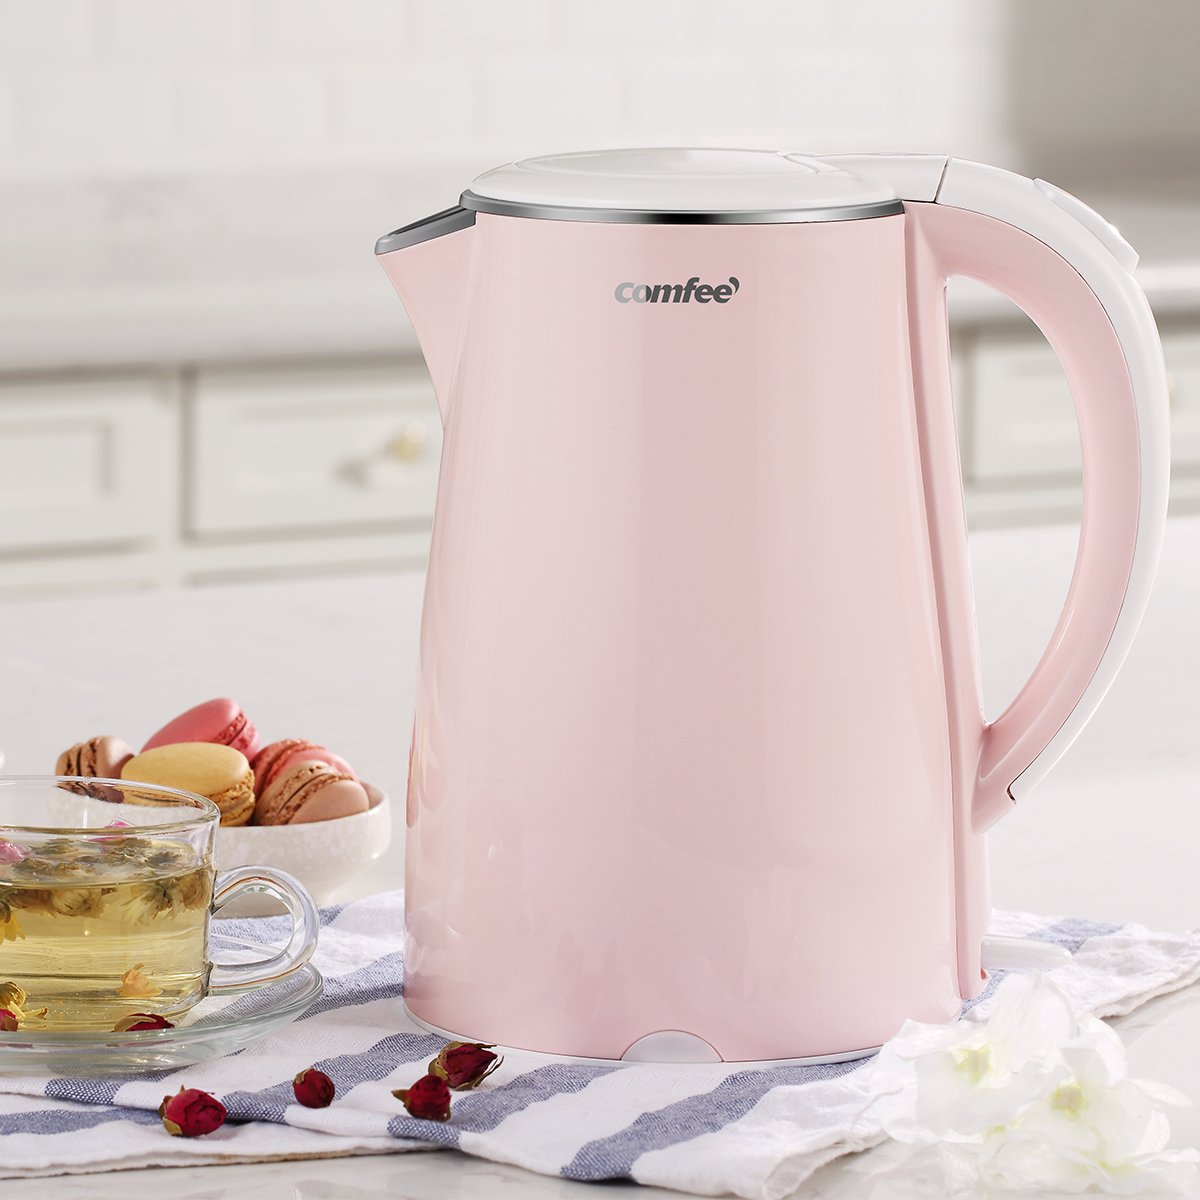 COMFEE' MK-HJ1705a1 Electric Kettle Teapot 1.7 Liter Fast Water Heater Boiler 1500W BPA-Free, Quiet Boil & Cool Touch Series, Auto Shut-Off and Boil Dry Protection, 1.7L, Baby Pink by COMFEE' (Image #3)